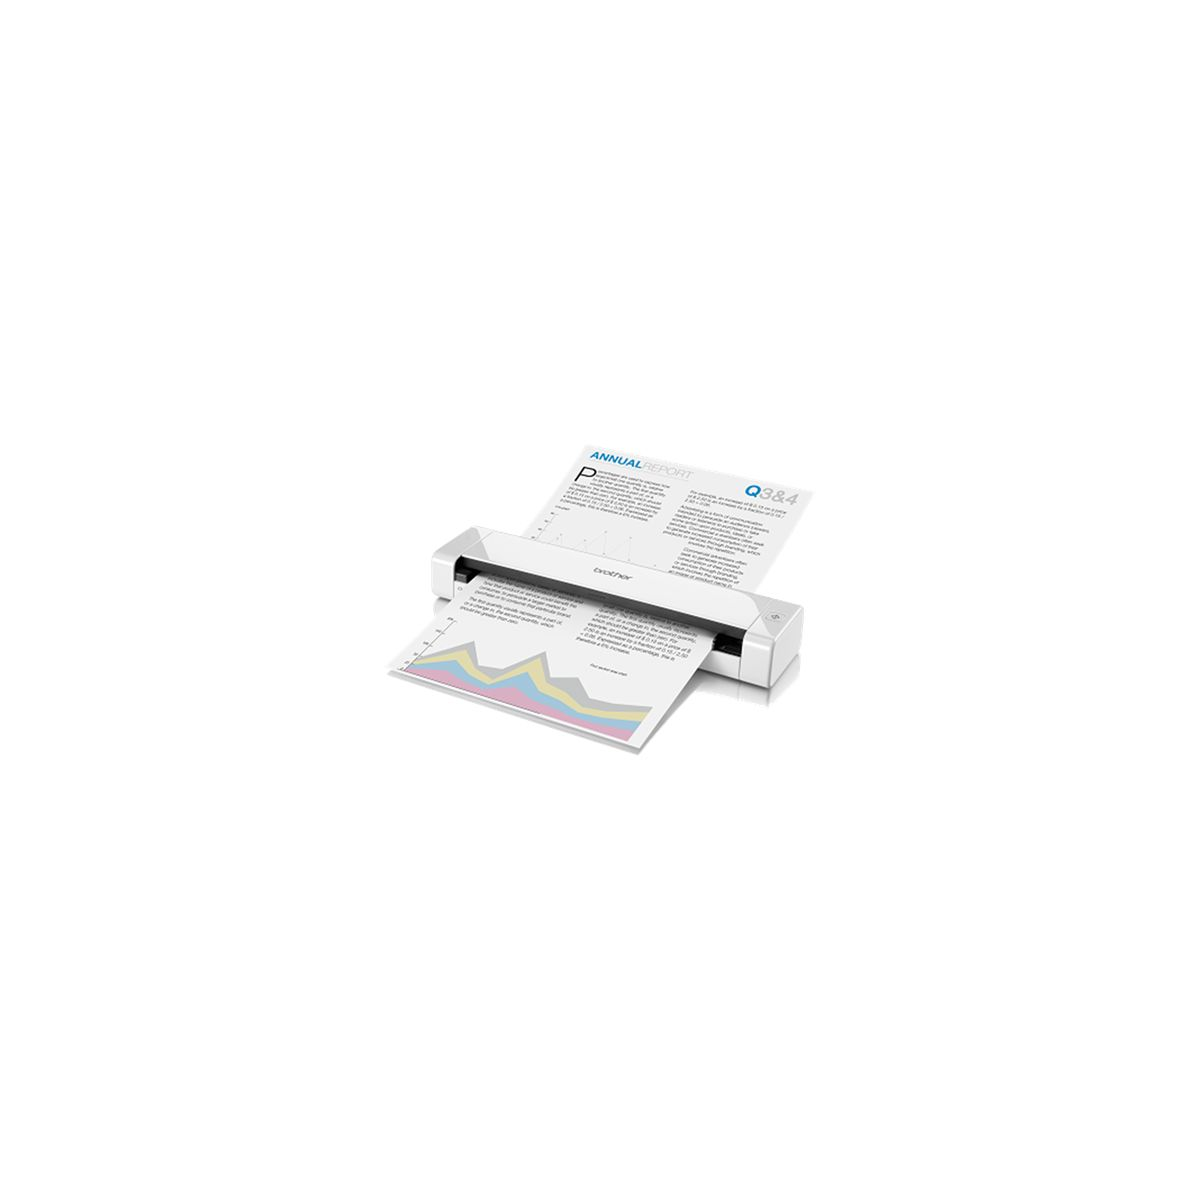 Scanner portable brother ds-720d - 2% de remise imm�diate avec le code : deal2